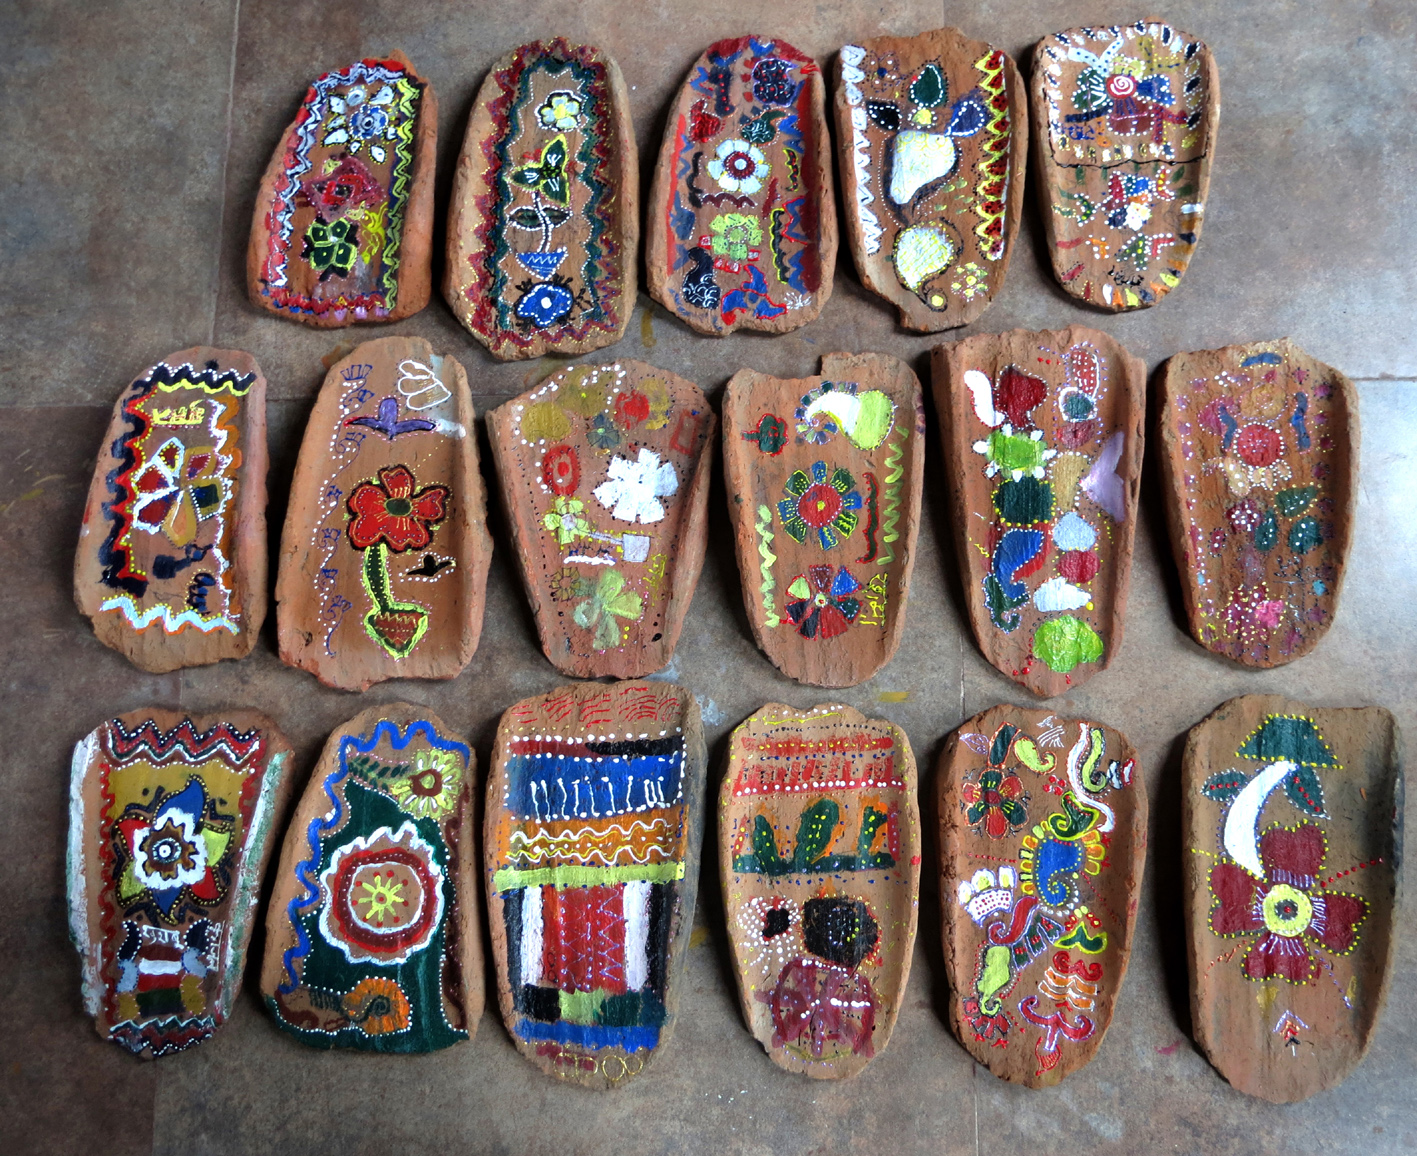 Art work by children in Maihar on khaprel tiles (image courtesy: Nobina Gupta).